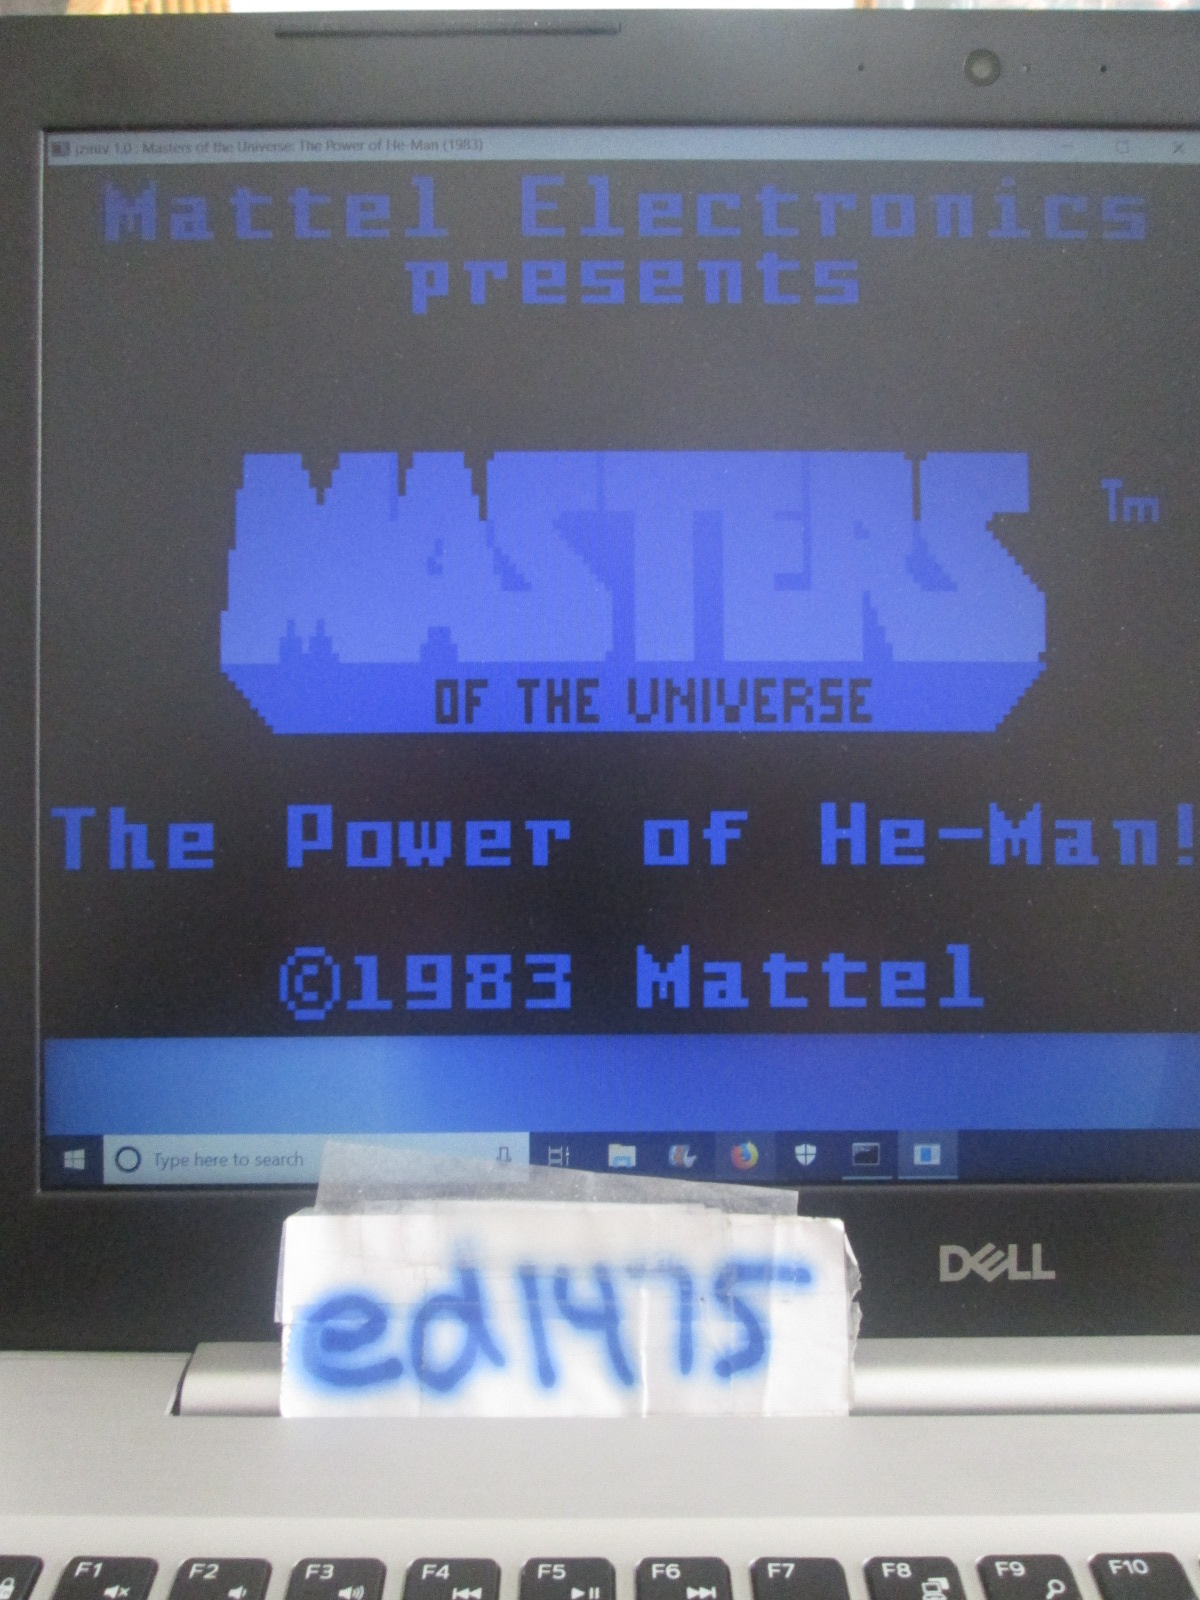 ed1475: Masters of the Universe: Skill 1 (Intellivision Emulated) 54,400 points on 2018-10-18 20:37:12